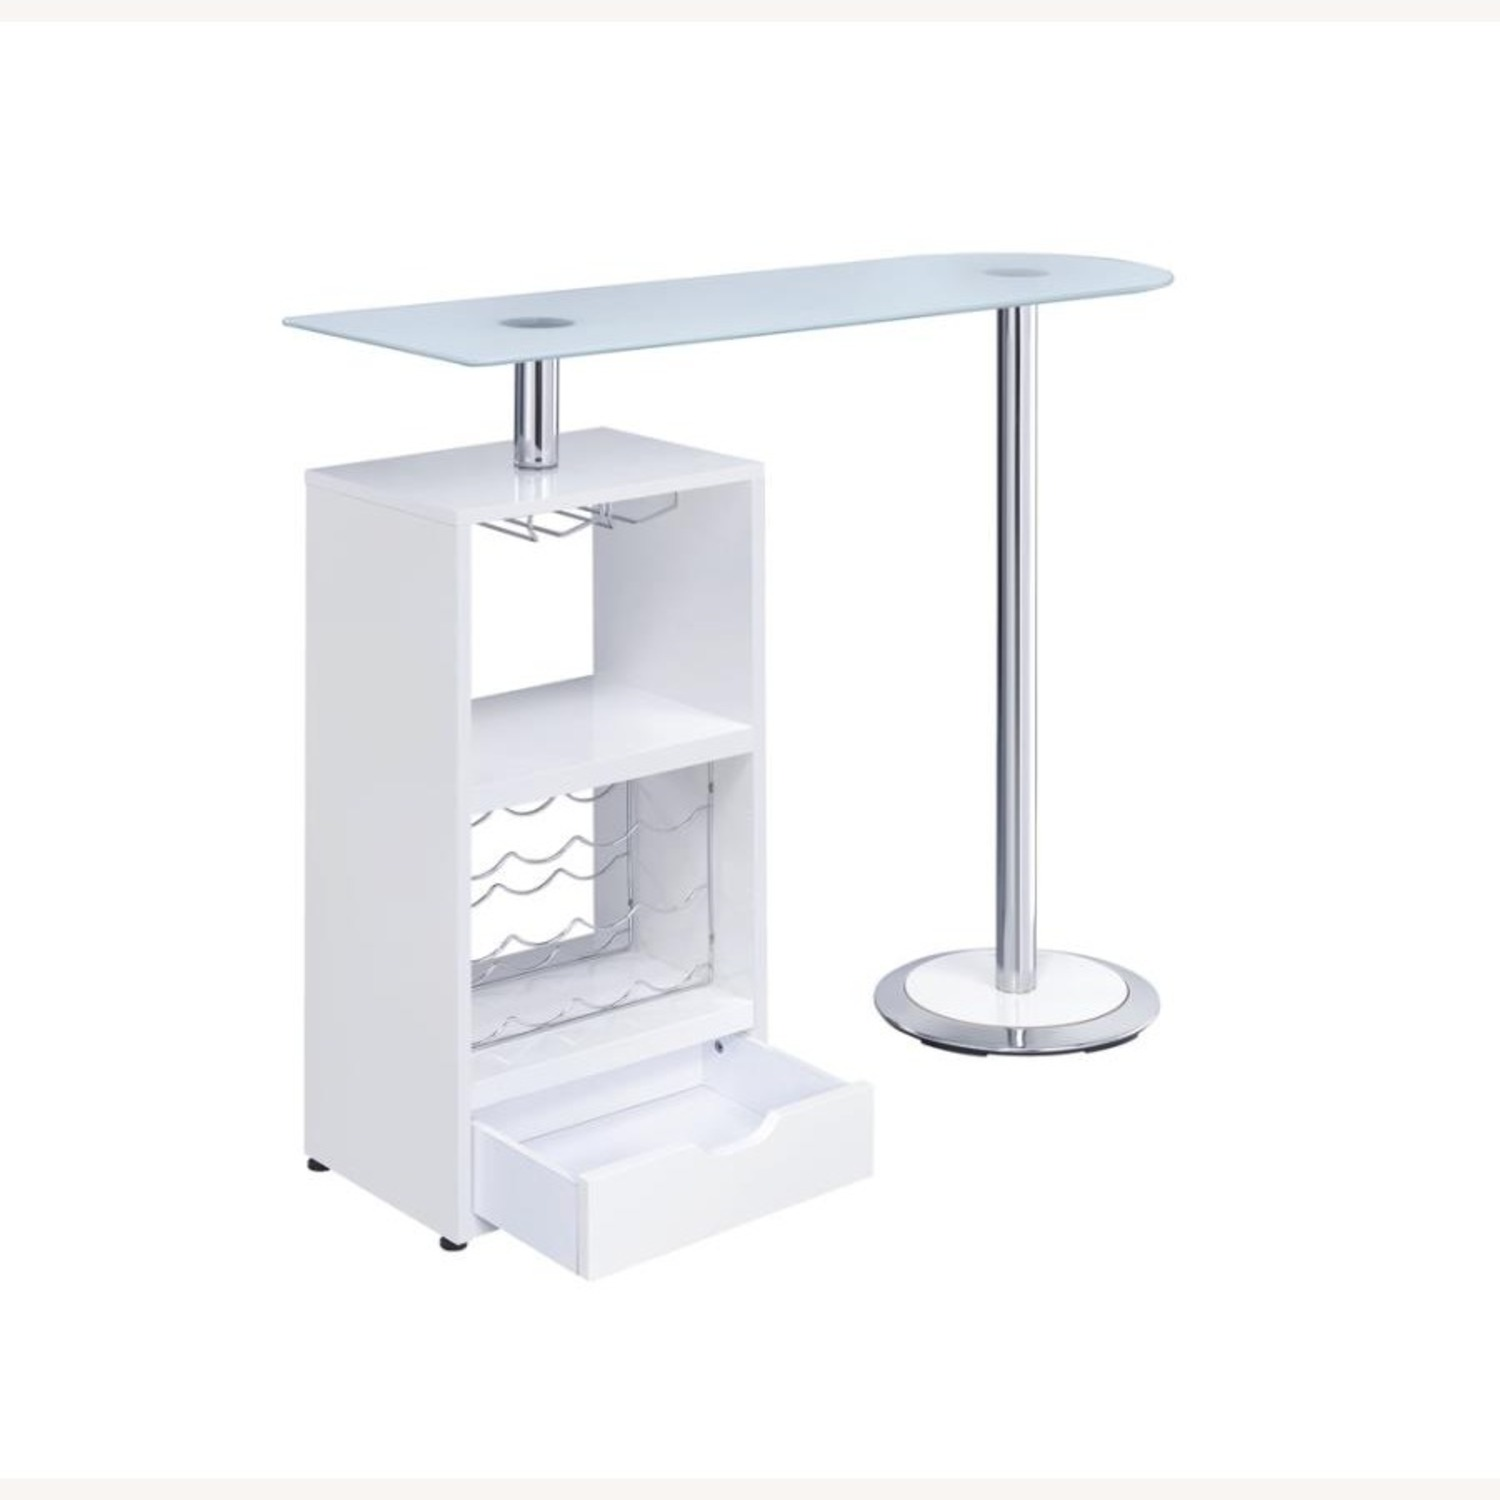 Bar Table In High Gloss White Lacquer Finish - image-2